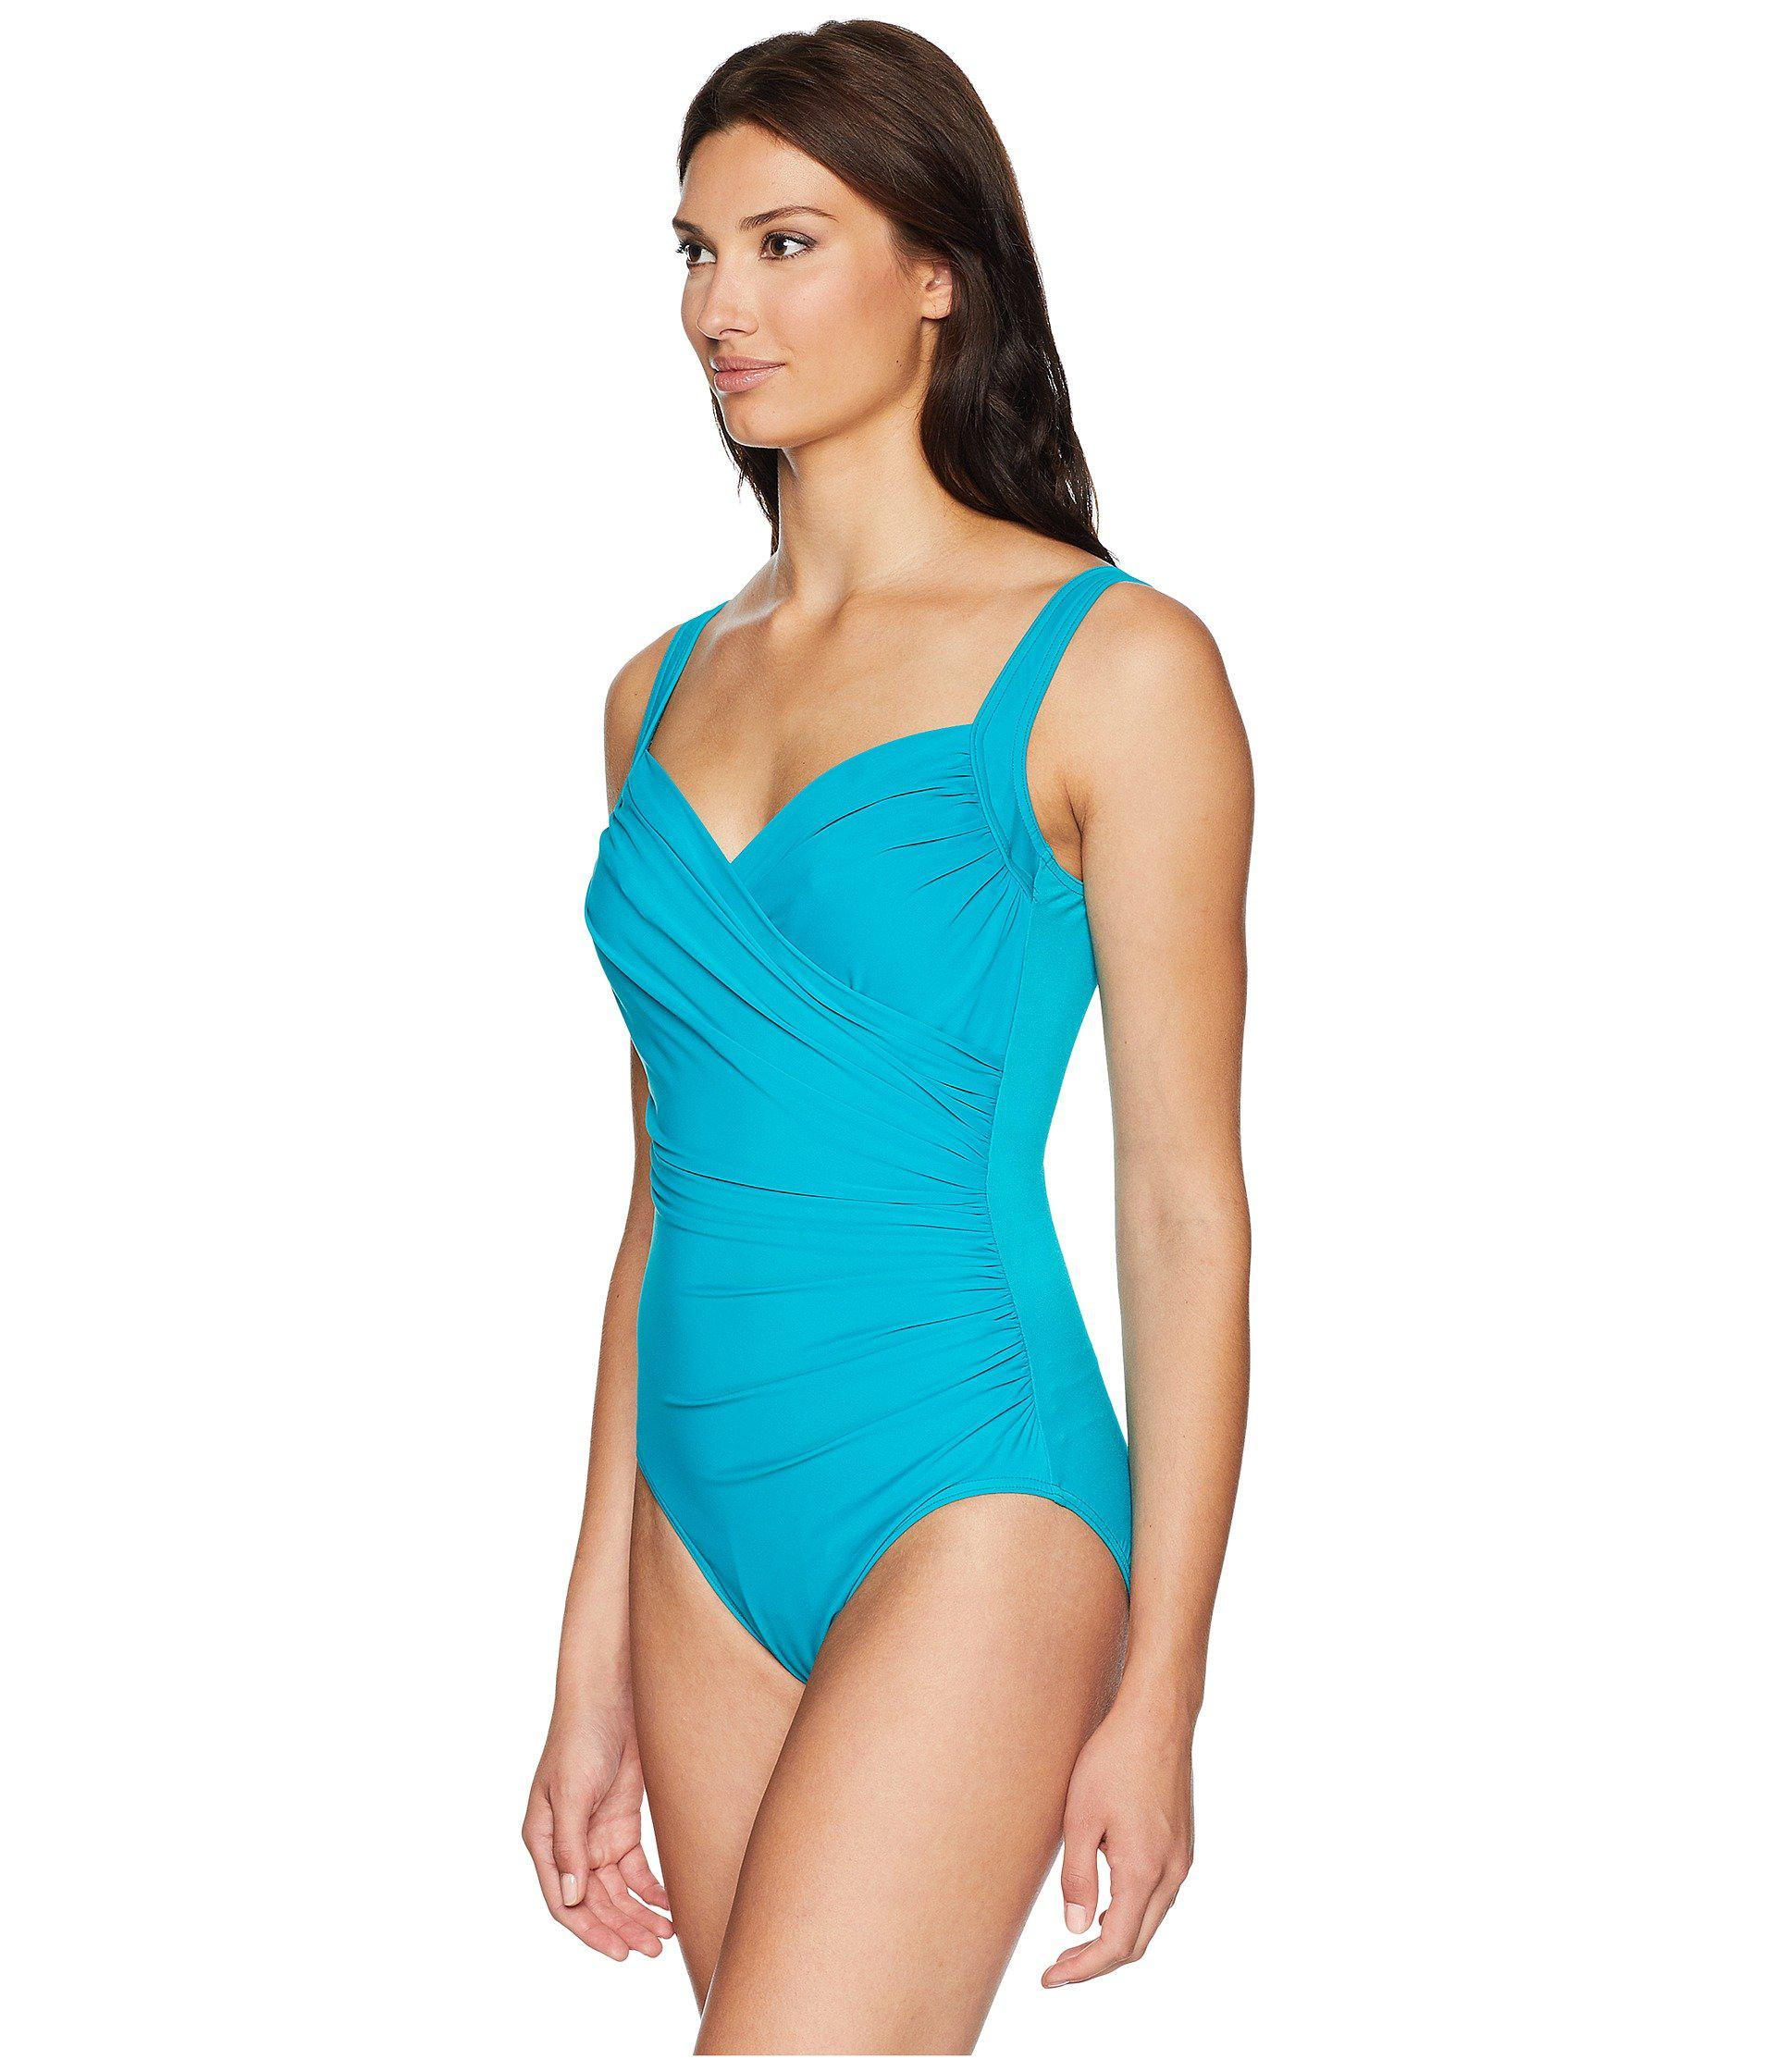 22eeec3ae5a2c Lyst - Miraclesuit Must Have 19 Sanibel One-piece (amalfi) Women's  Swimsuits One Piece in Blue